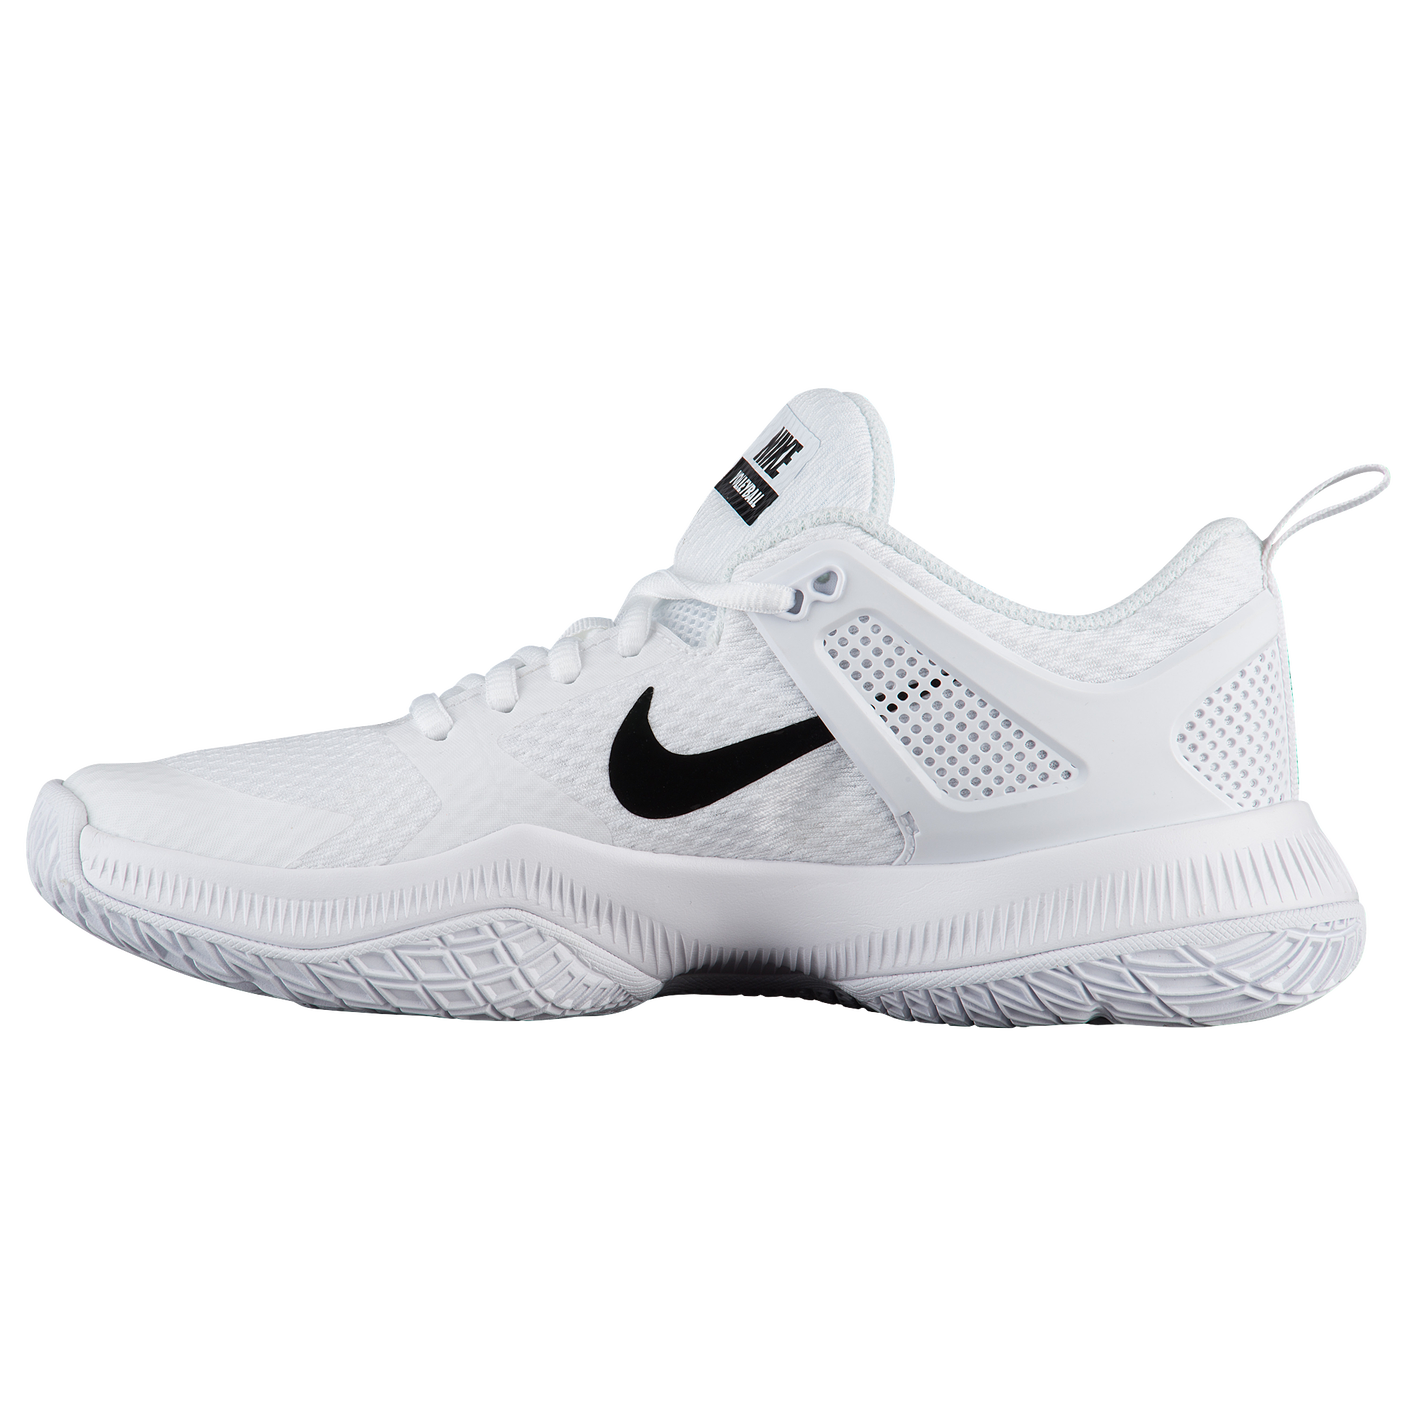 aa8adabe2346 Nike Air Zoom Hyperace - Women s - Volleyball - Shoes - White Black ...